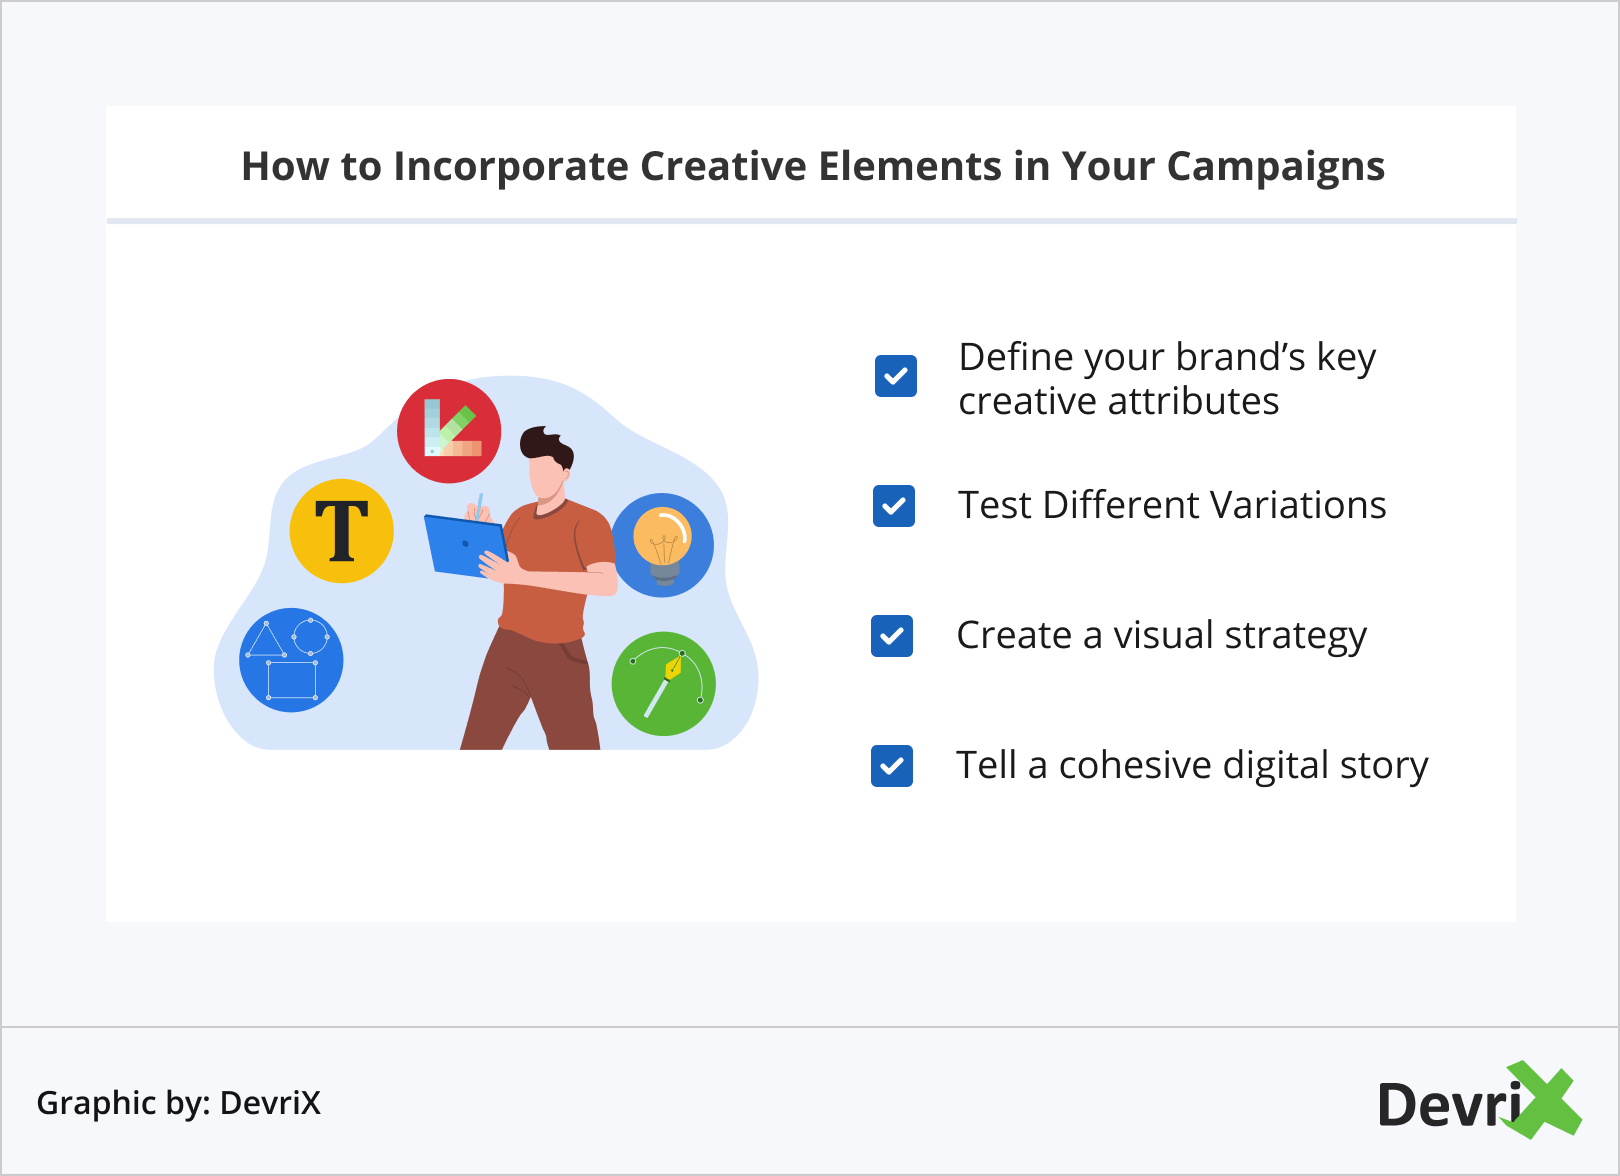 How to Incorporate Creative Elements in Your Campaigns